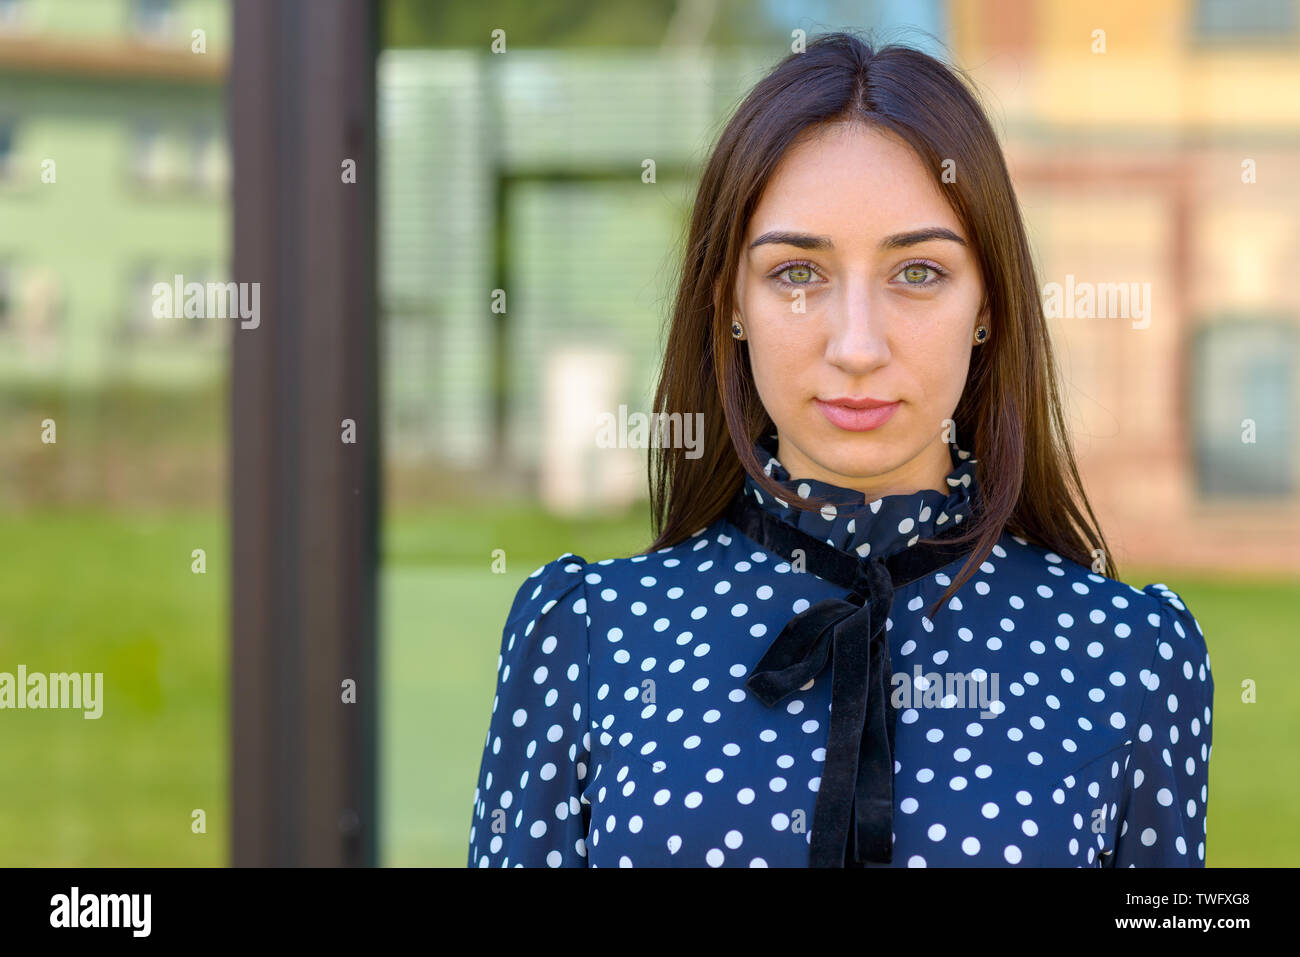 Serious demure stylish young woman in a stylish blue and white outfit staring at the camera against window reflections and copy space - Stock Image